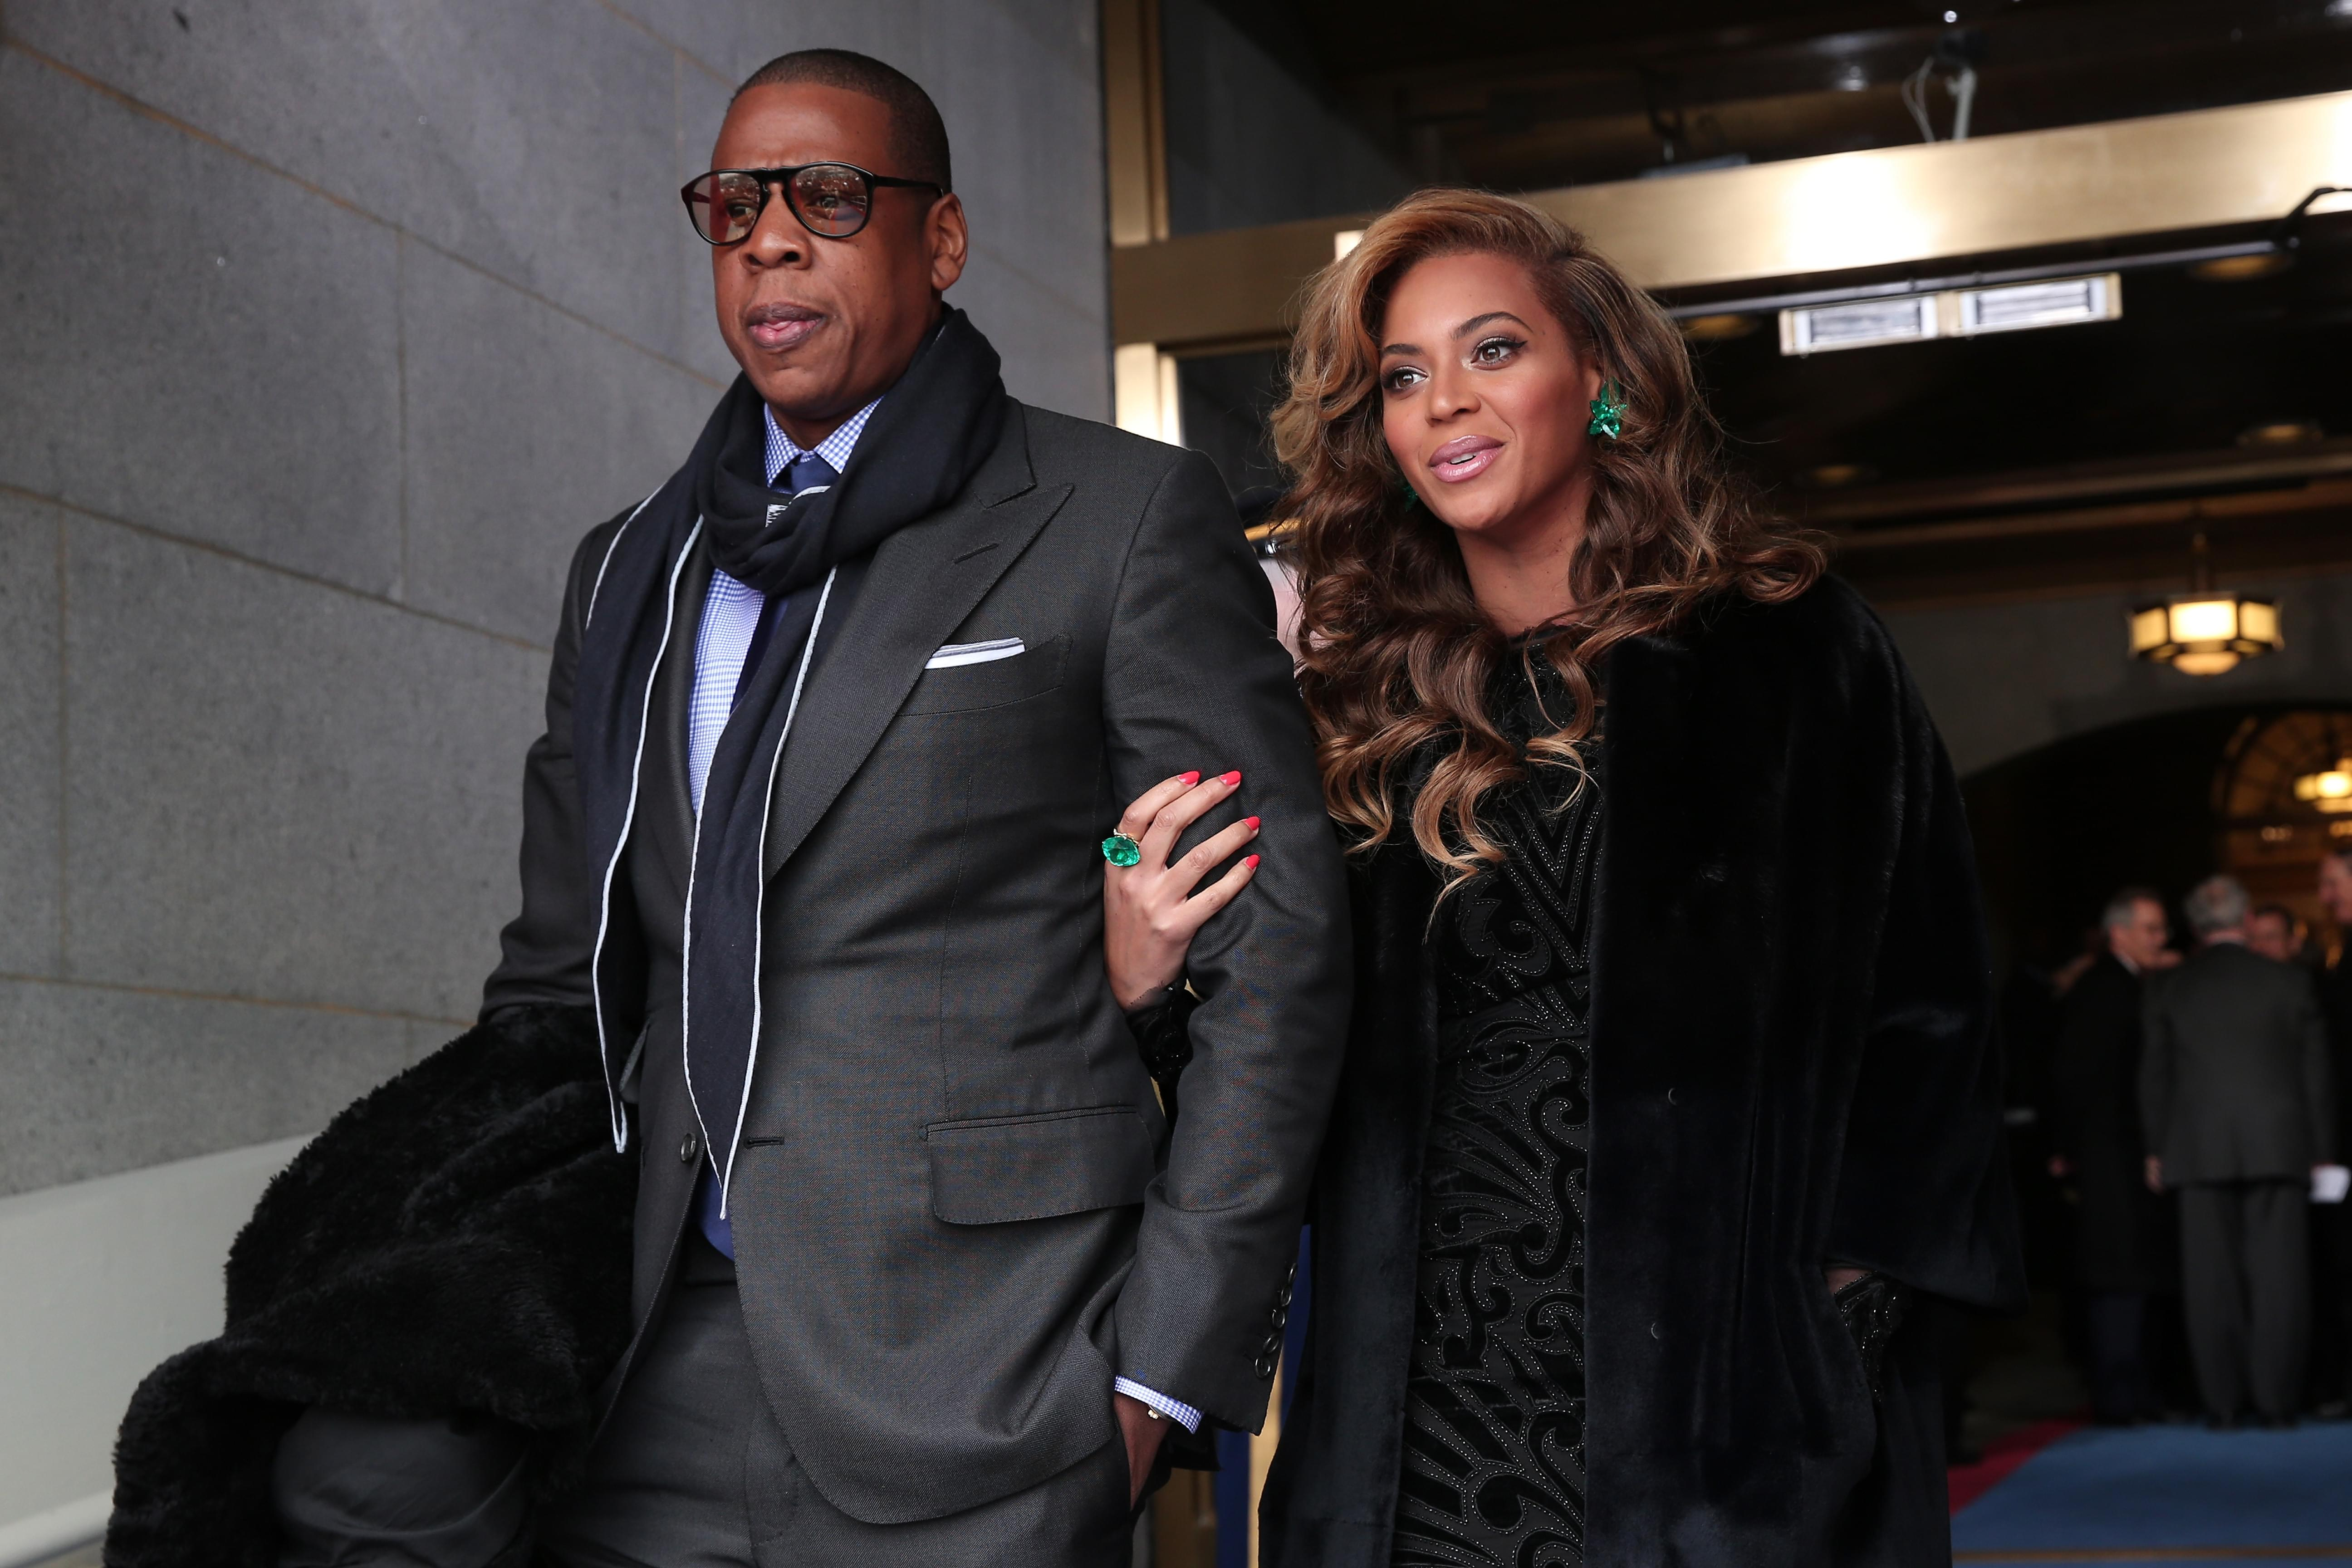 Beyonce and Jay-Z's Concert Contract Demands Are Reportedly Revealed